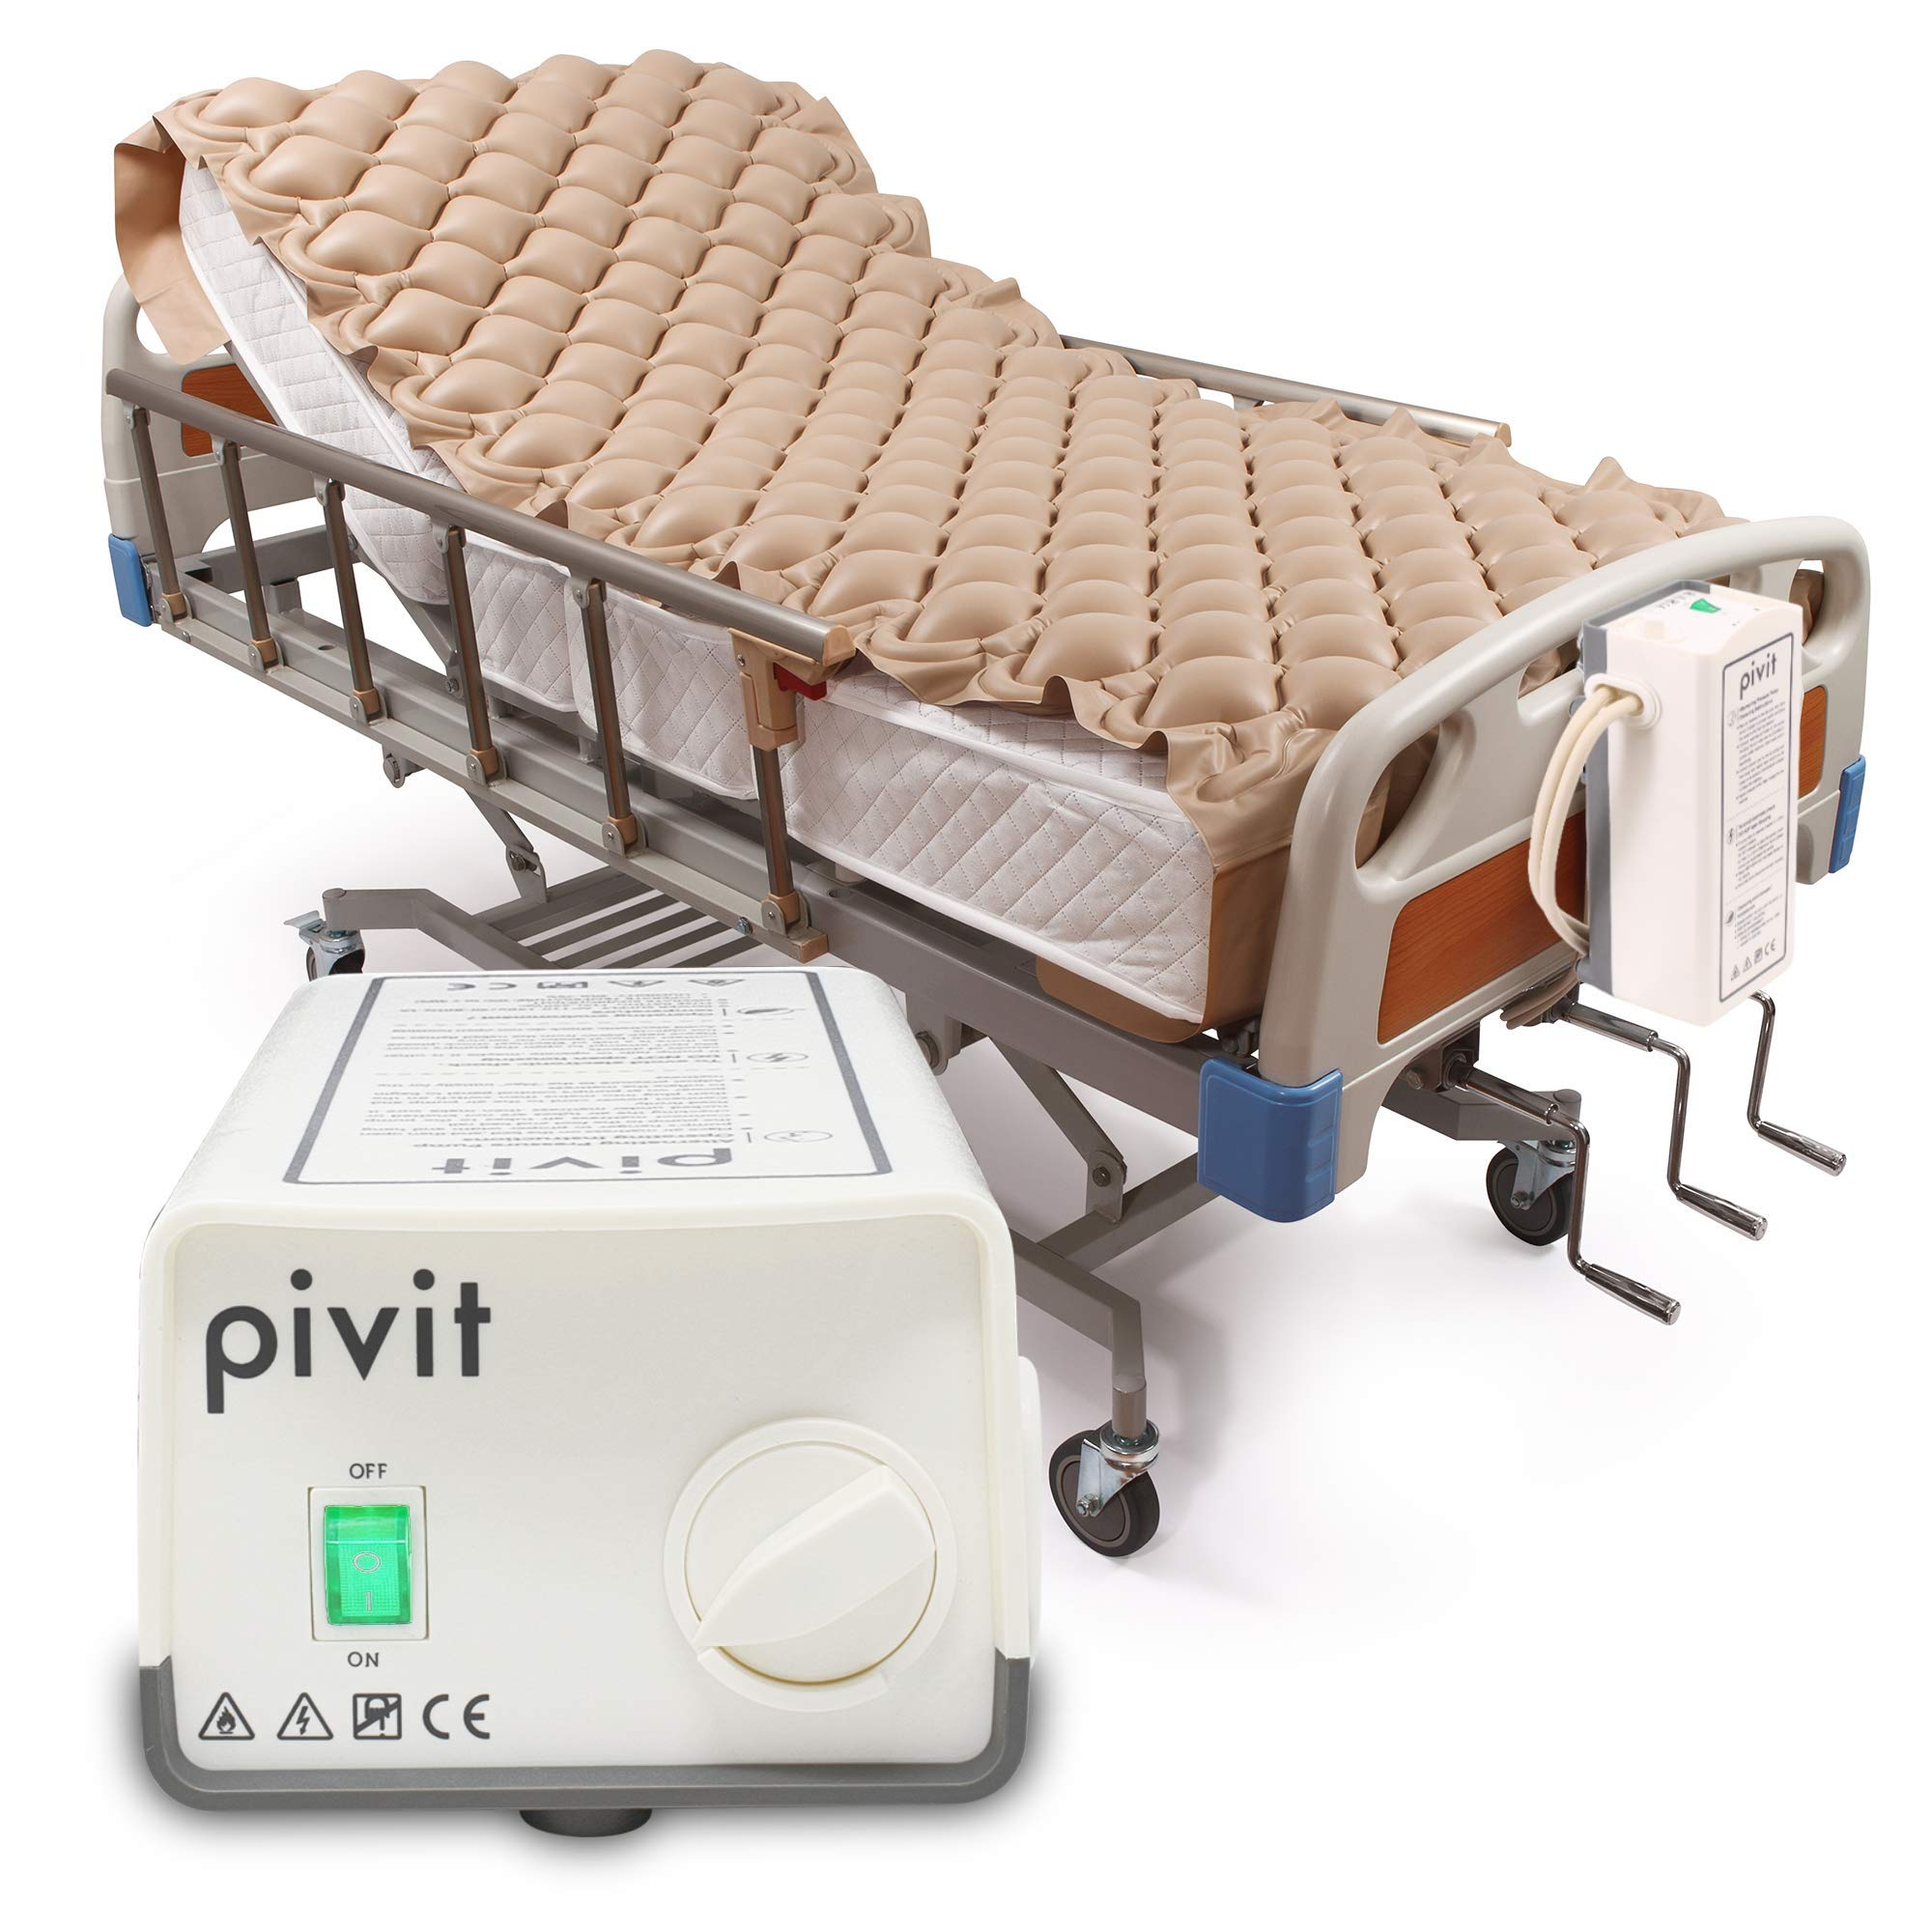 Pivit Alternating Pressure Mattress | Includes Electric Pump System and Mattress Pad Cover | Quiet Inflatable Bed Air Topper for Pressure Ulcer and Pressure Sore Treatment | Fits Standard Hospital Bed by pivit